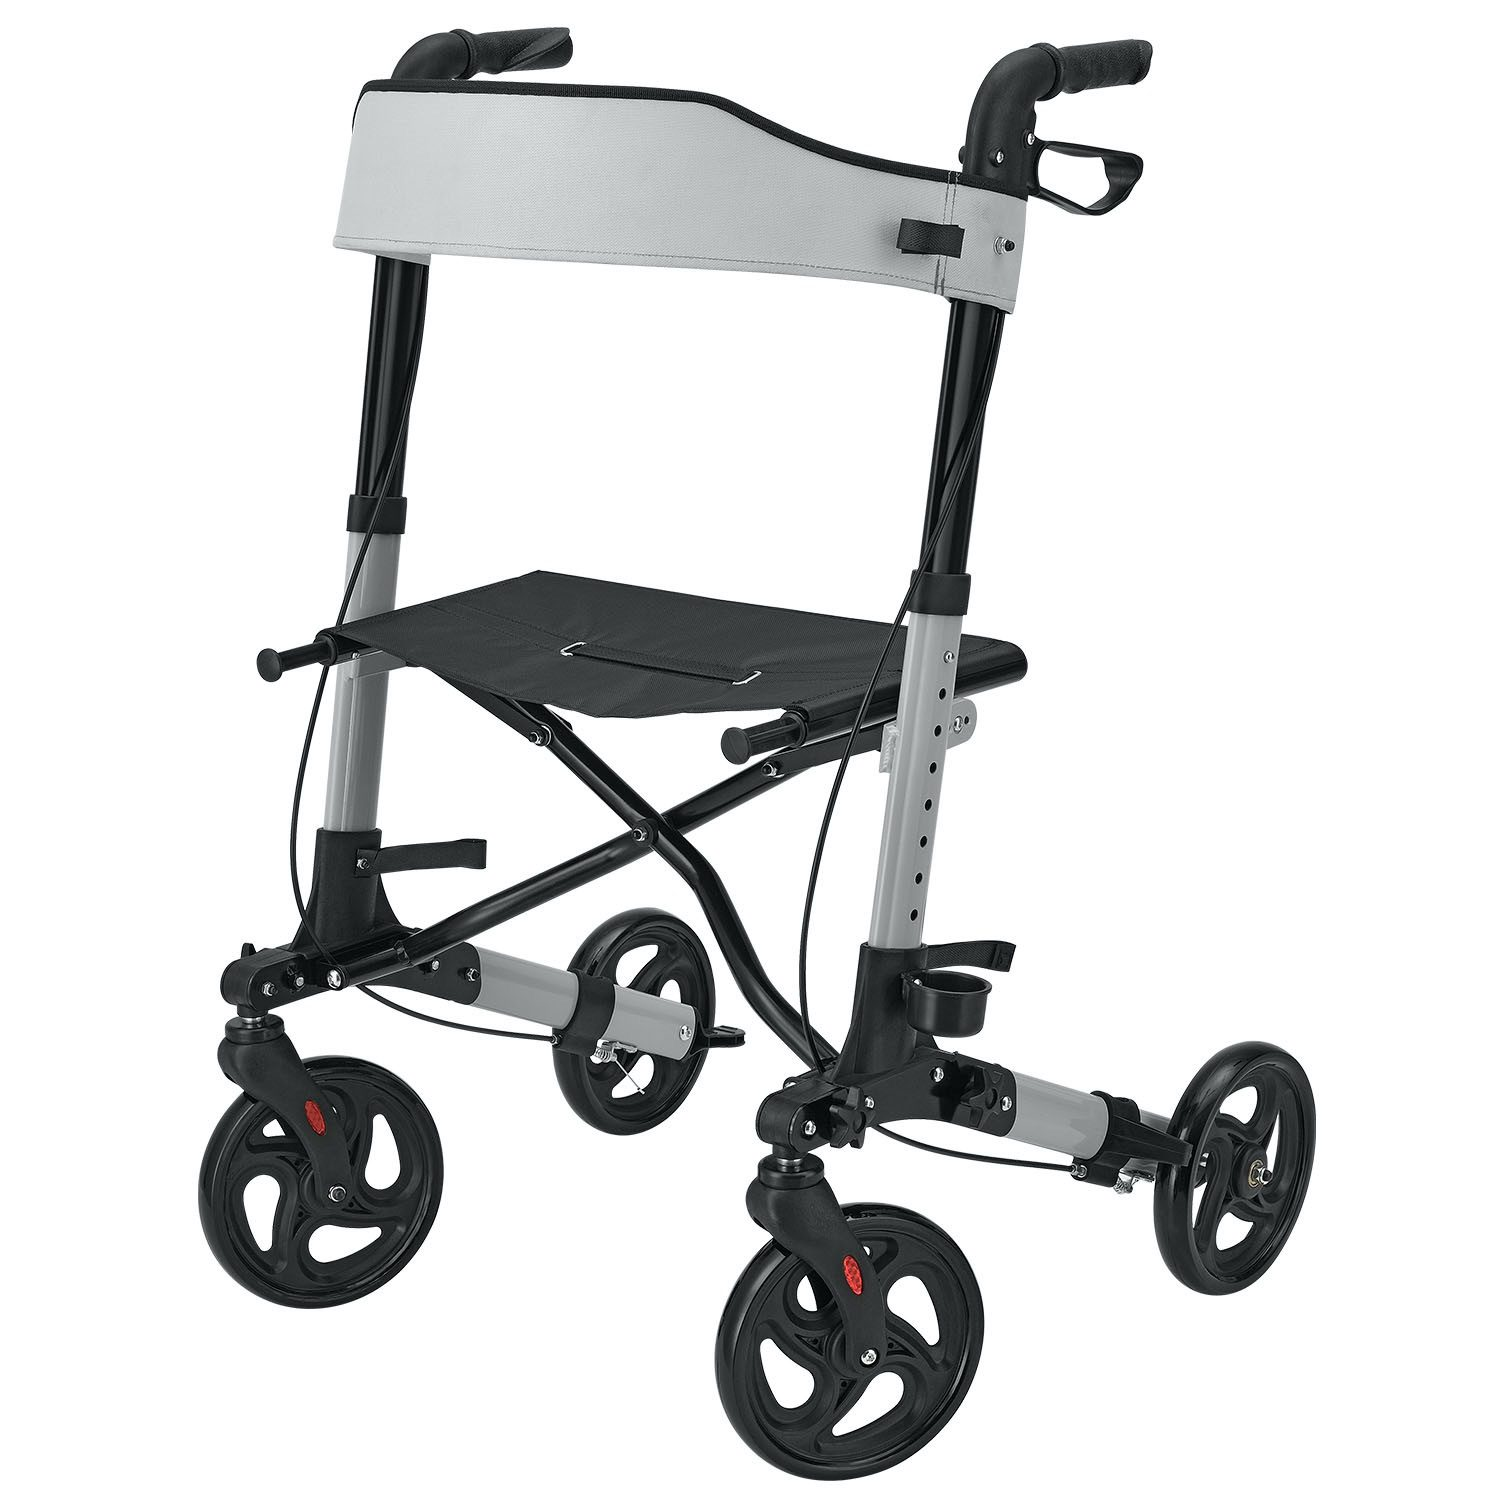 Rollator - HealthSmart - Folding - Silver - Without Bag